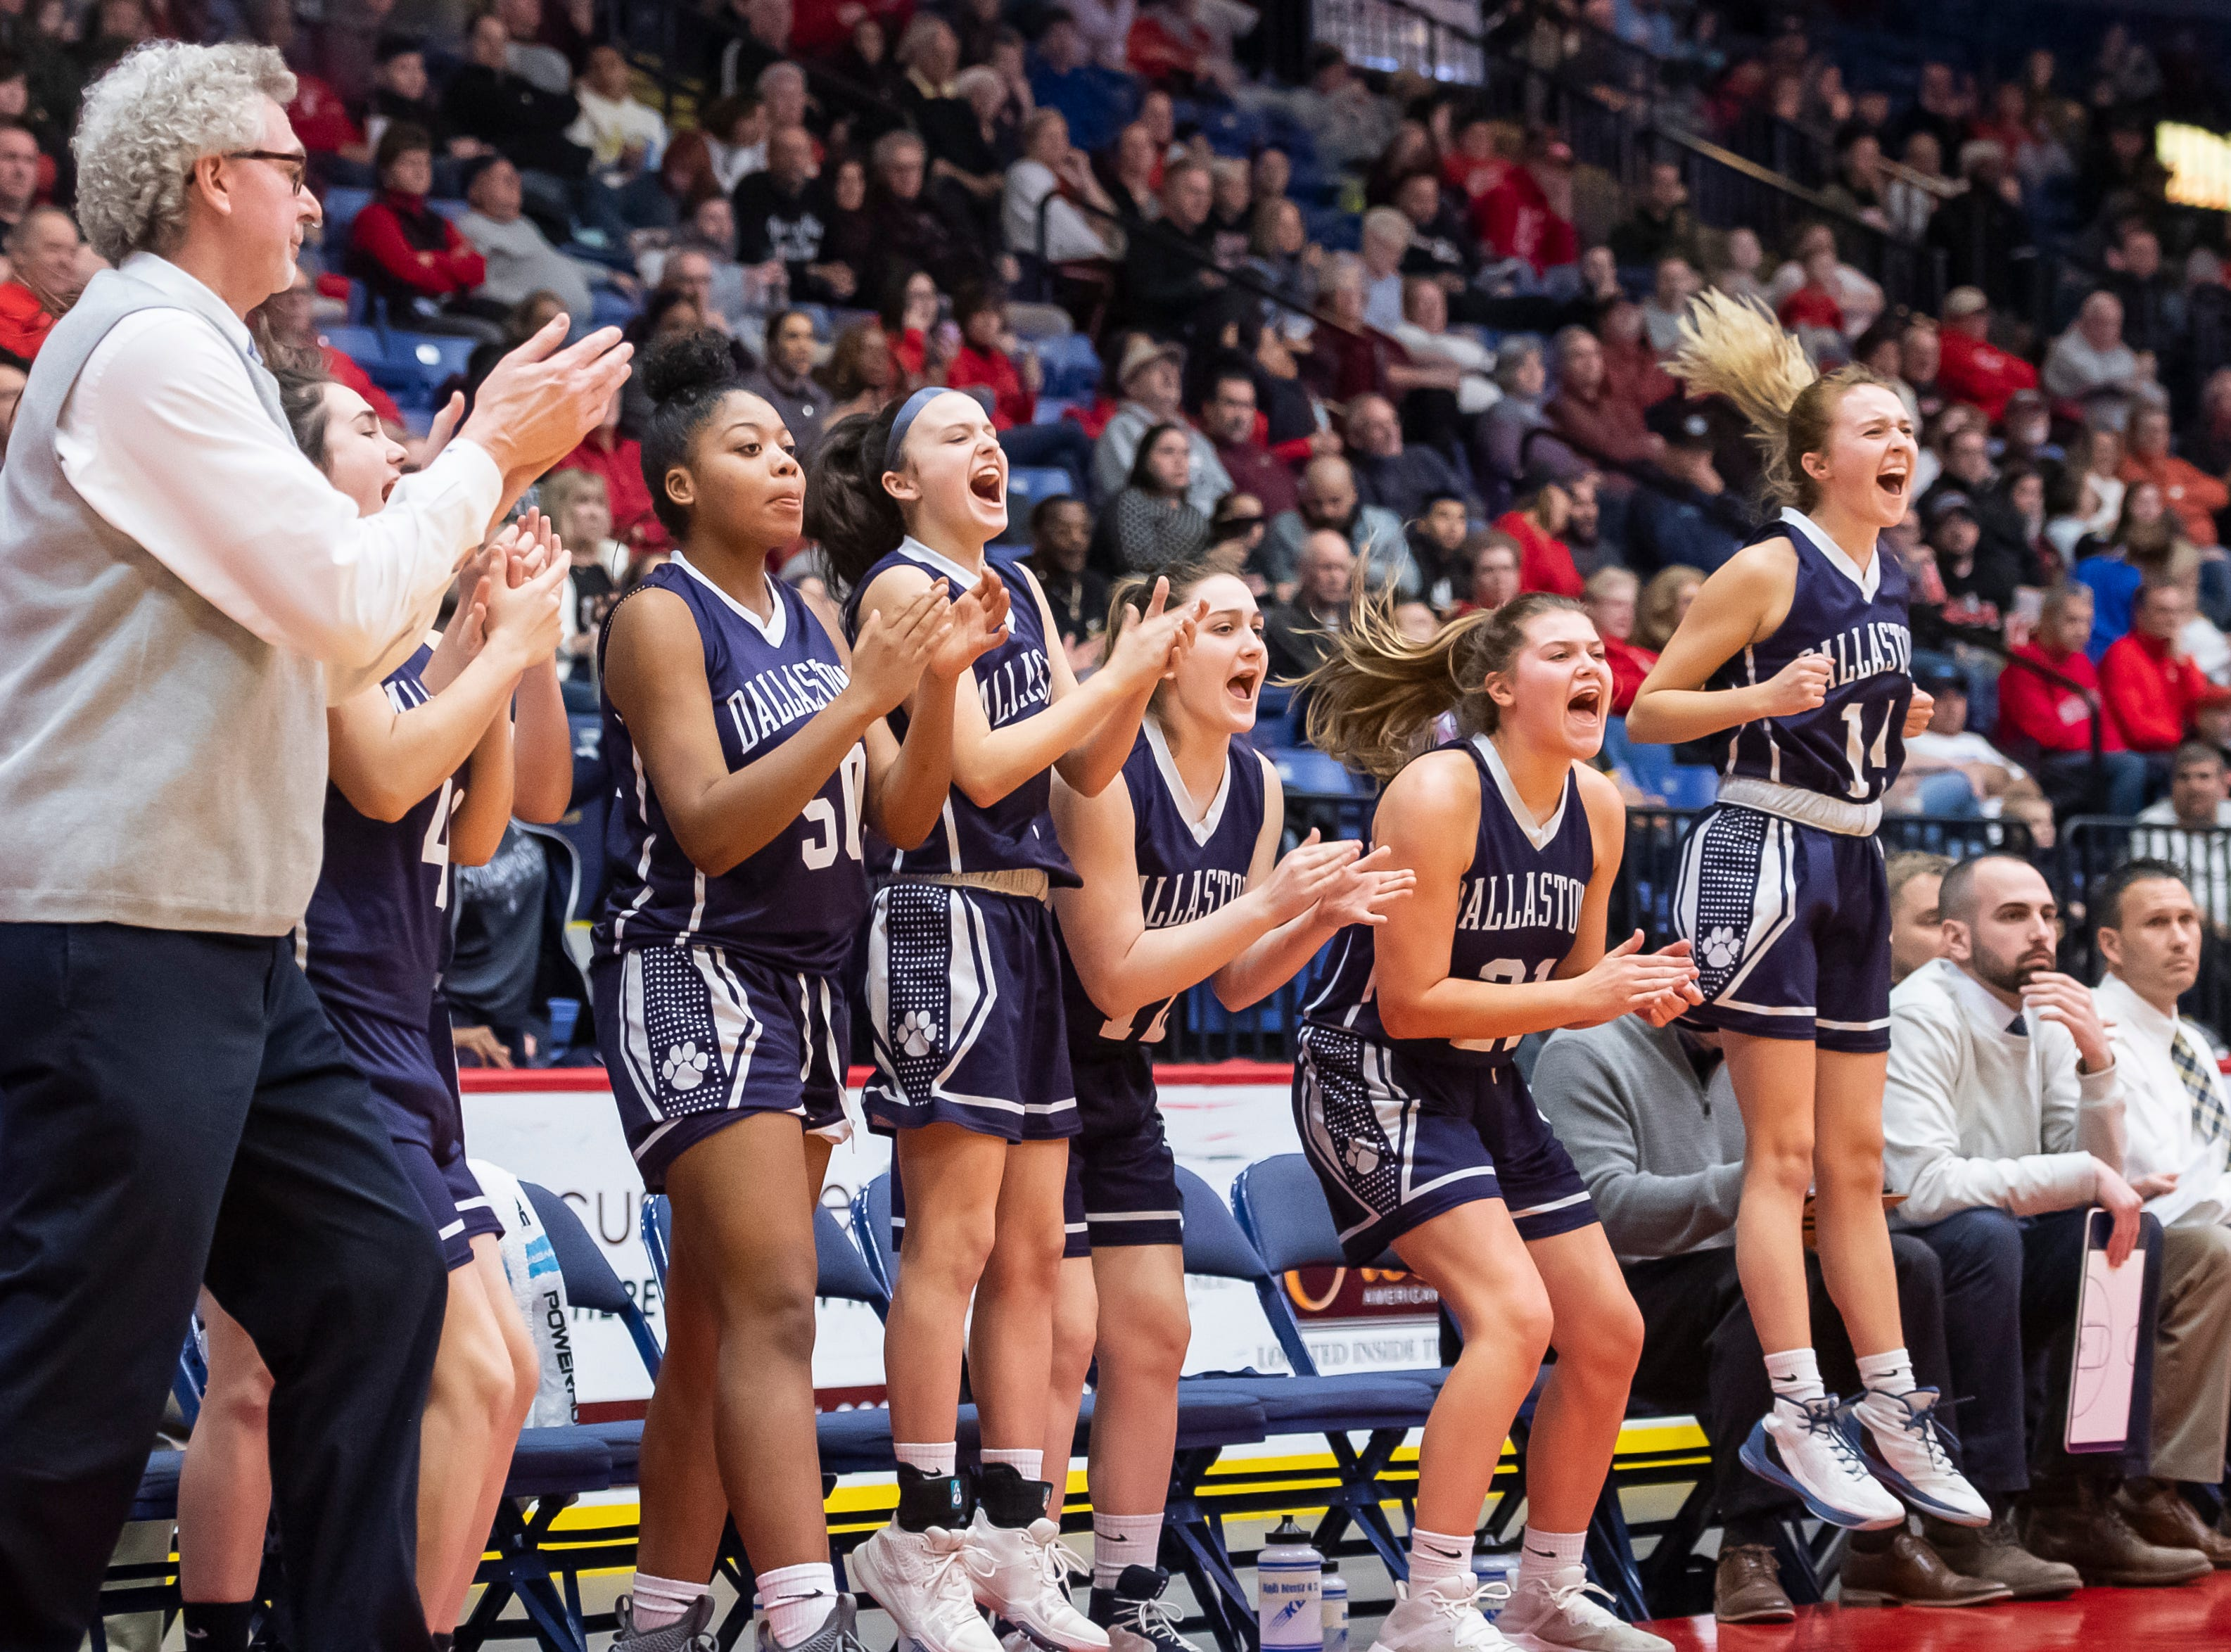 The Dallastown bench reacts after the Wildcats score during the District 3 6A girls championship game against Cumberland Valley at the Santander Arena in Reading, Pa., Friday, March 1, 2019. Dallastown fell 33-27.